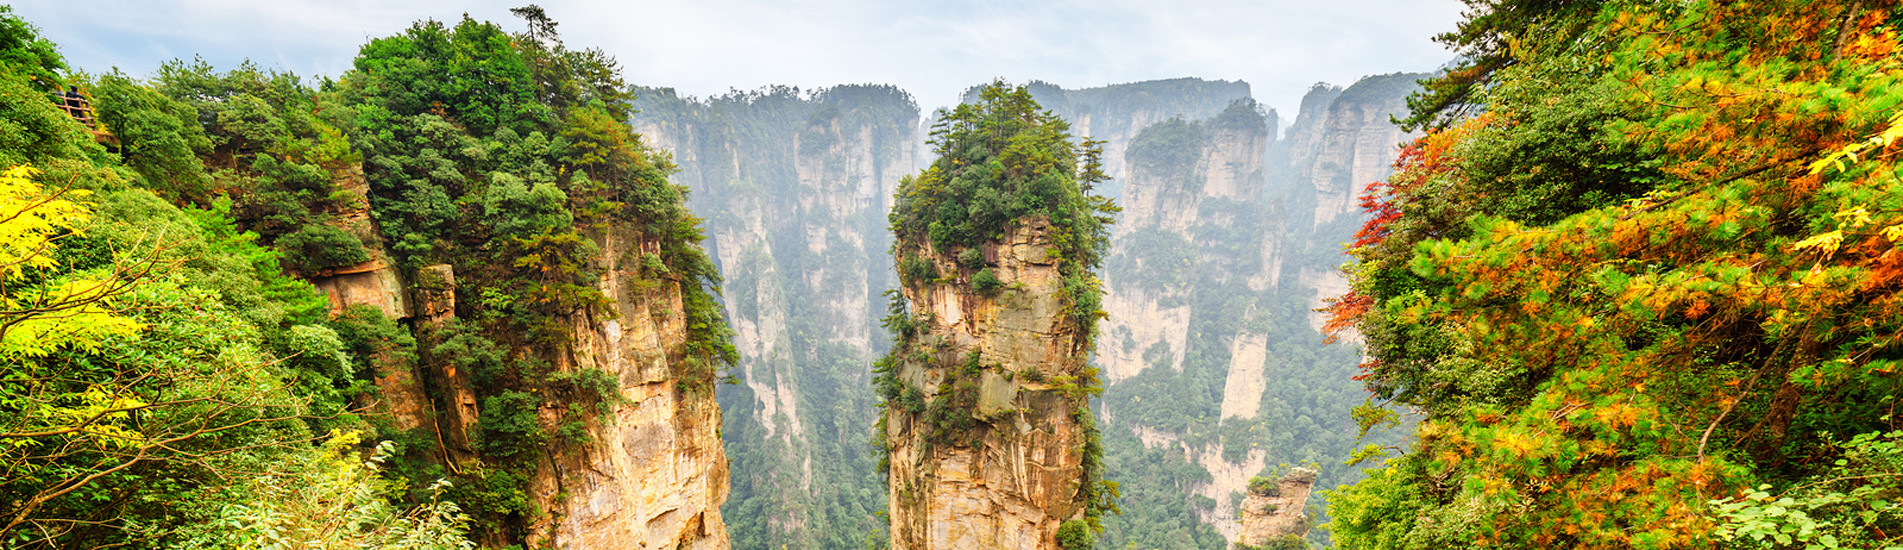 the landscape of Zhangjiajie National Forest Park